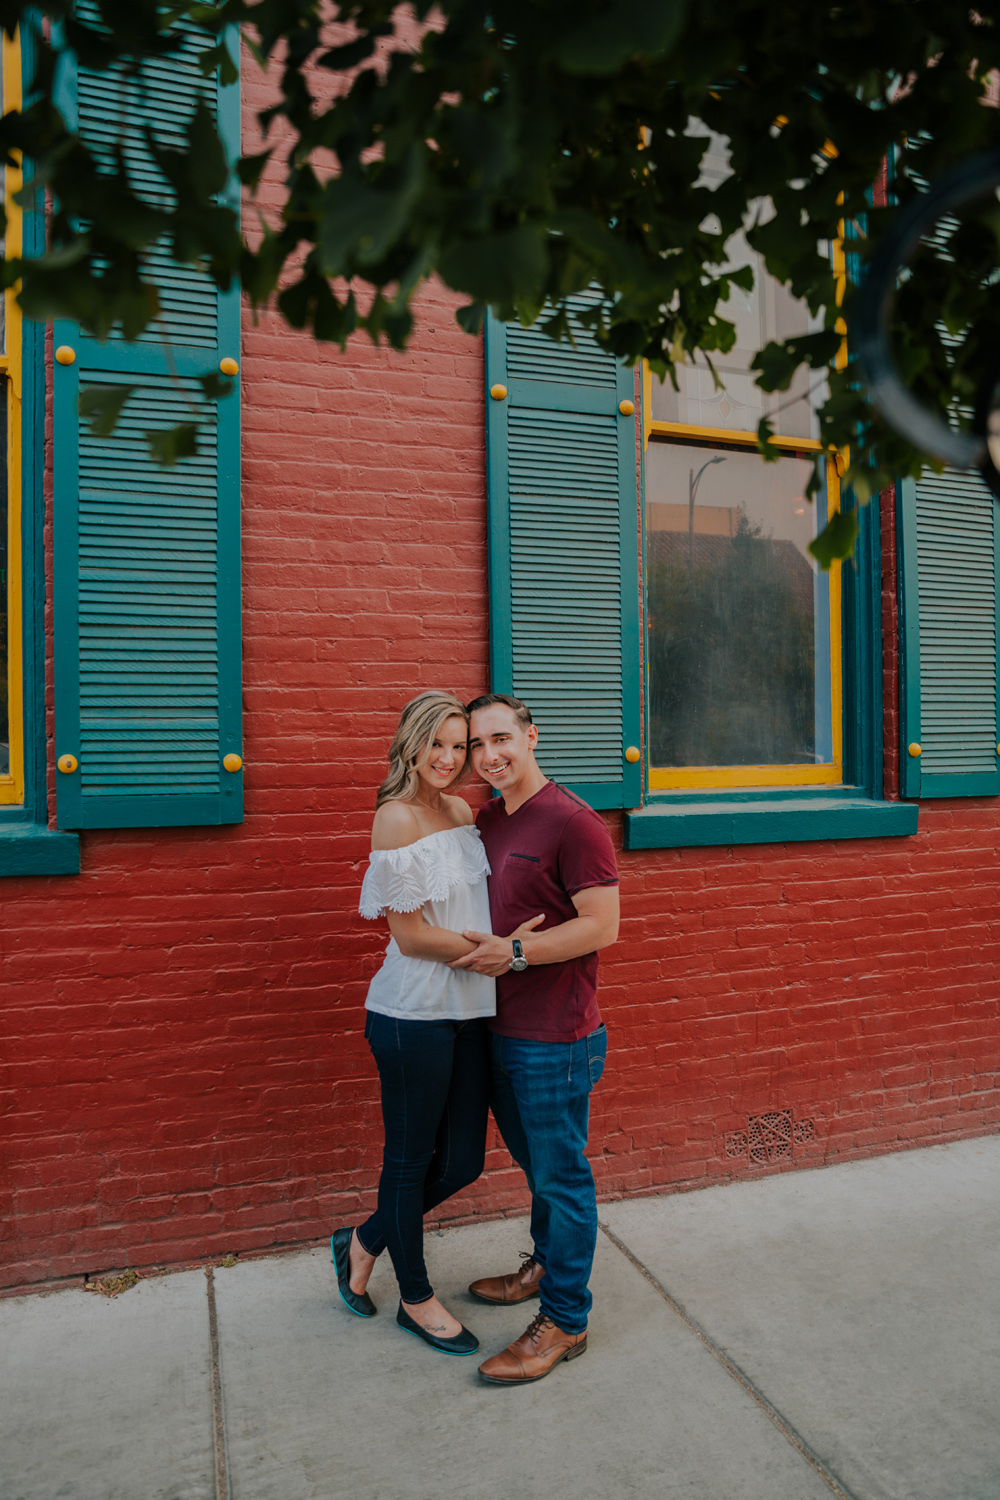 Chico-CA-engagement-photography-Madison-Bear-Garden-Chico-Downtown-Argus-Bar-78.jpg